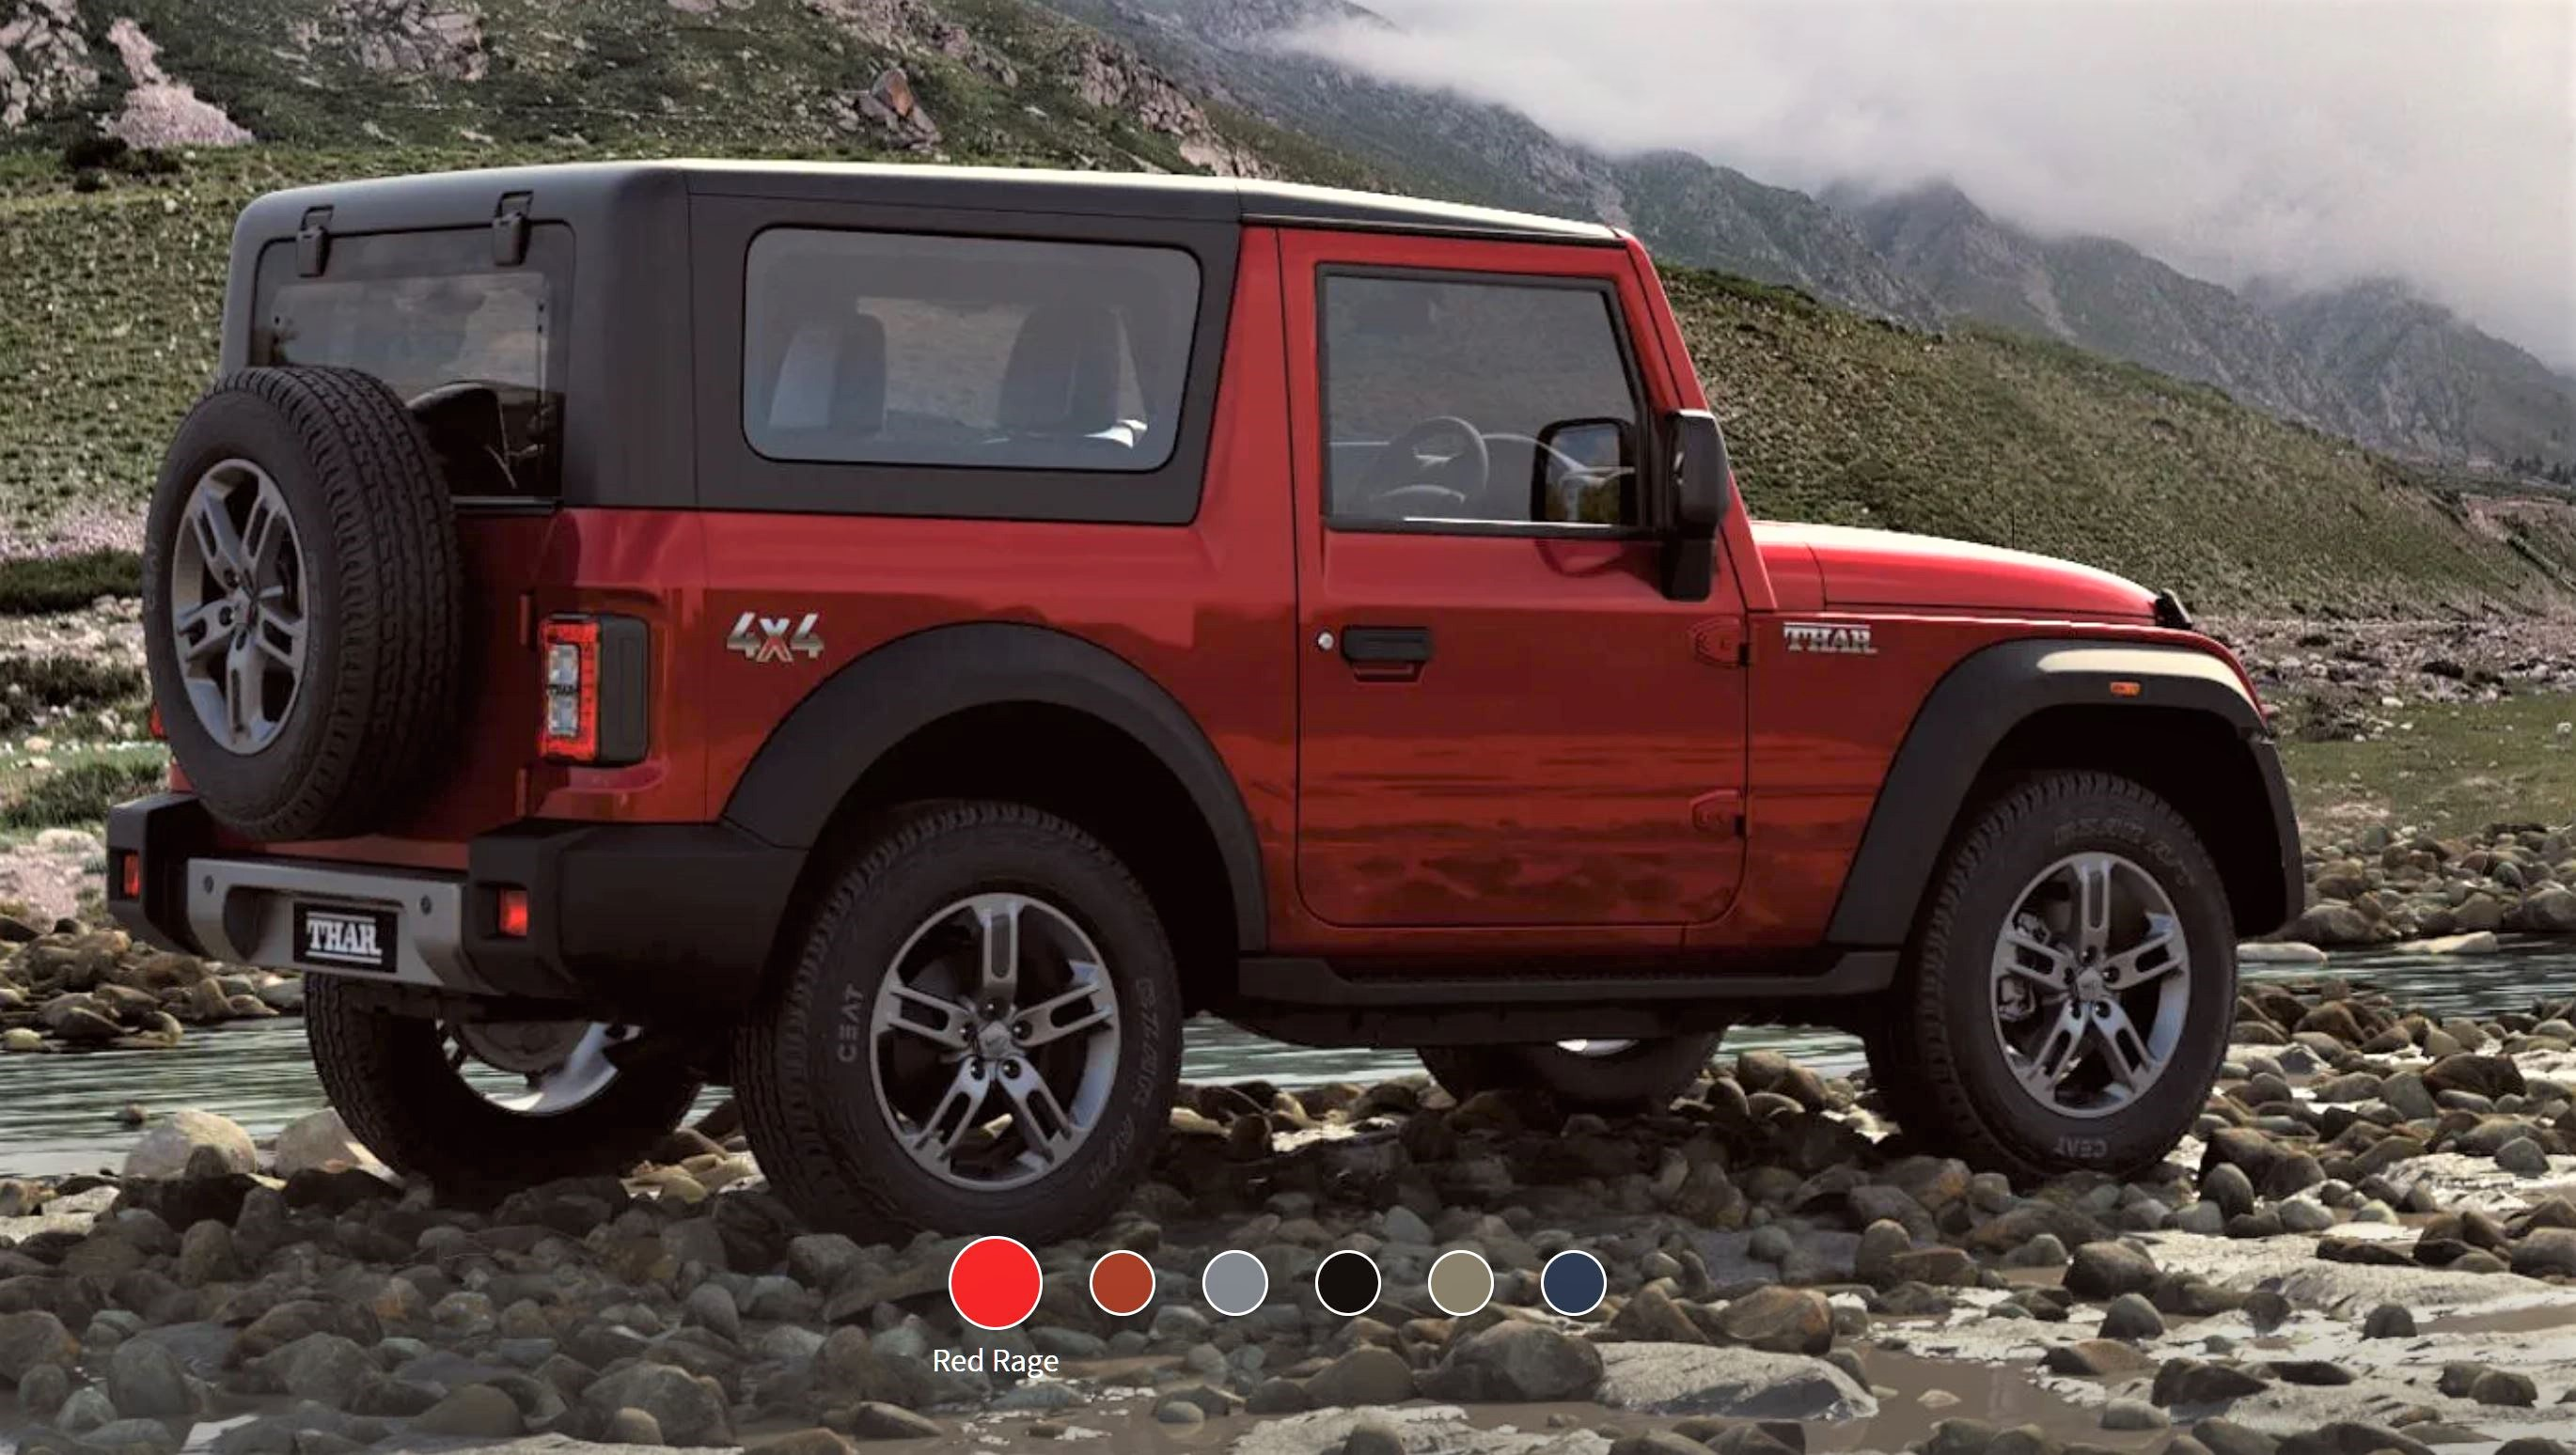 New Mahindra Thar Red Rage Rear 3-Quarter View